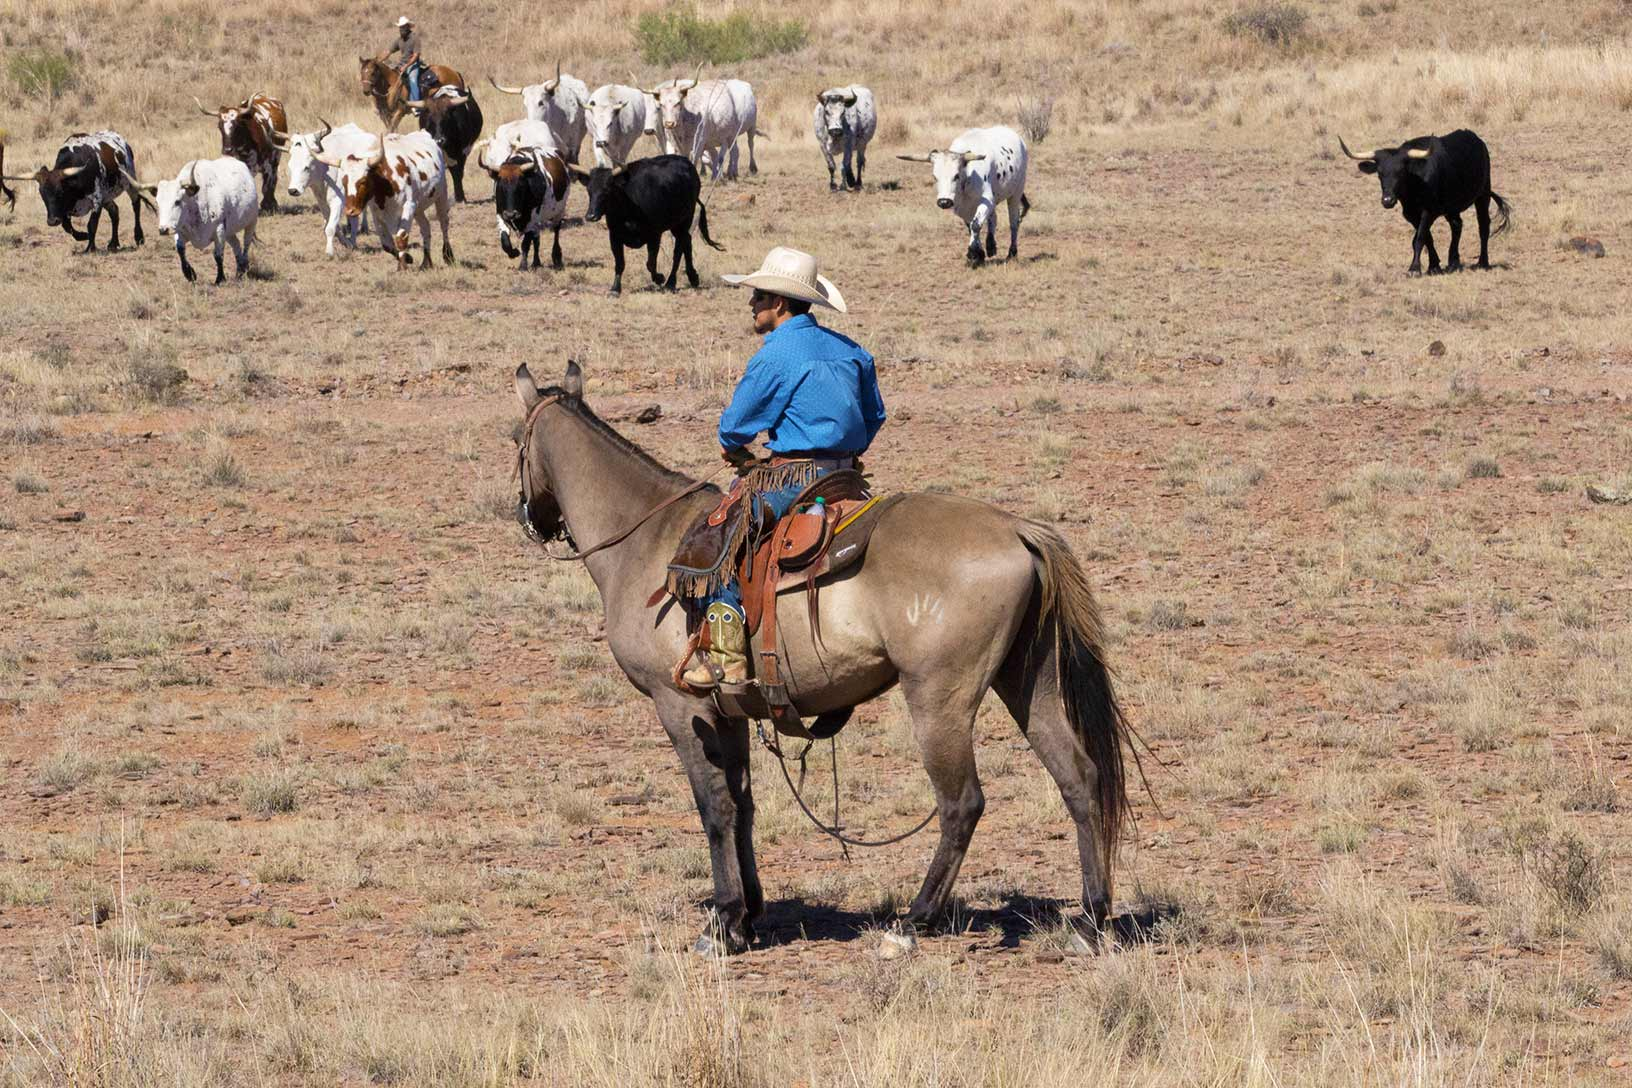 Rockafella in rough country sorting cattle